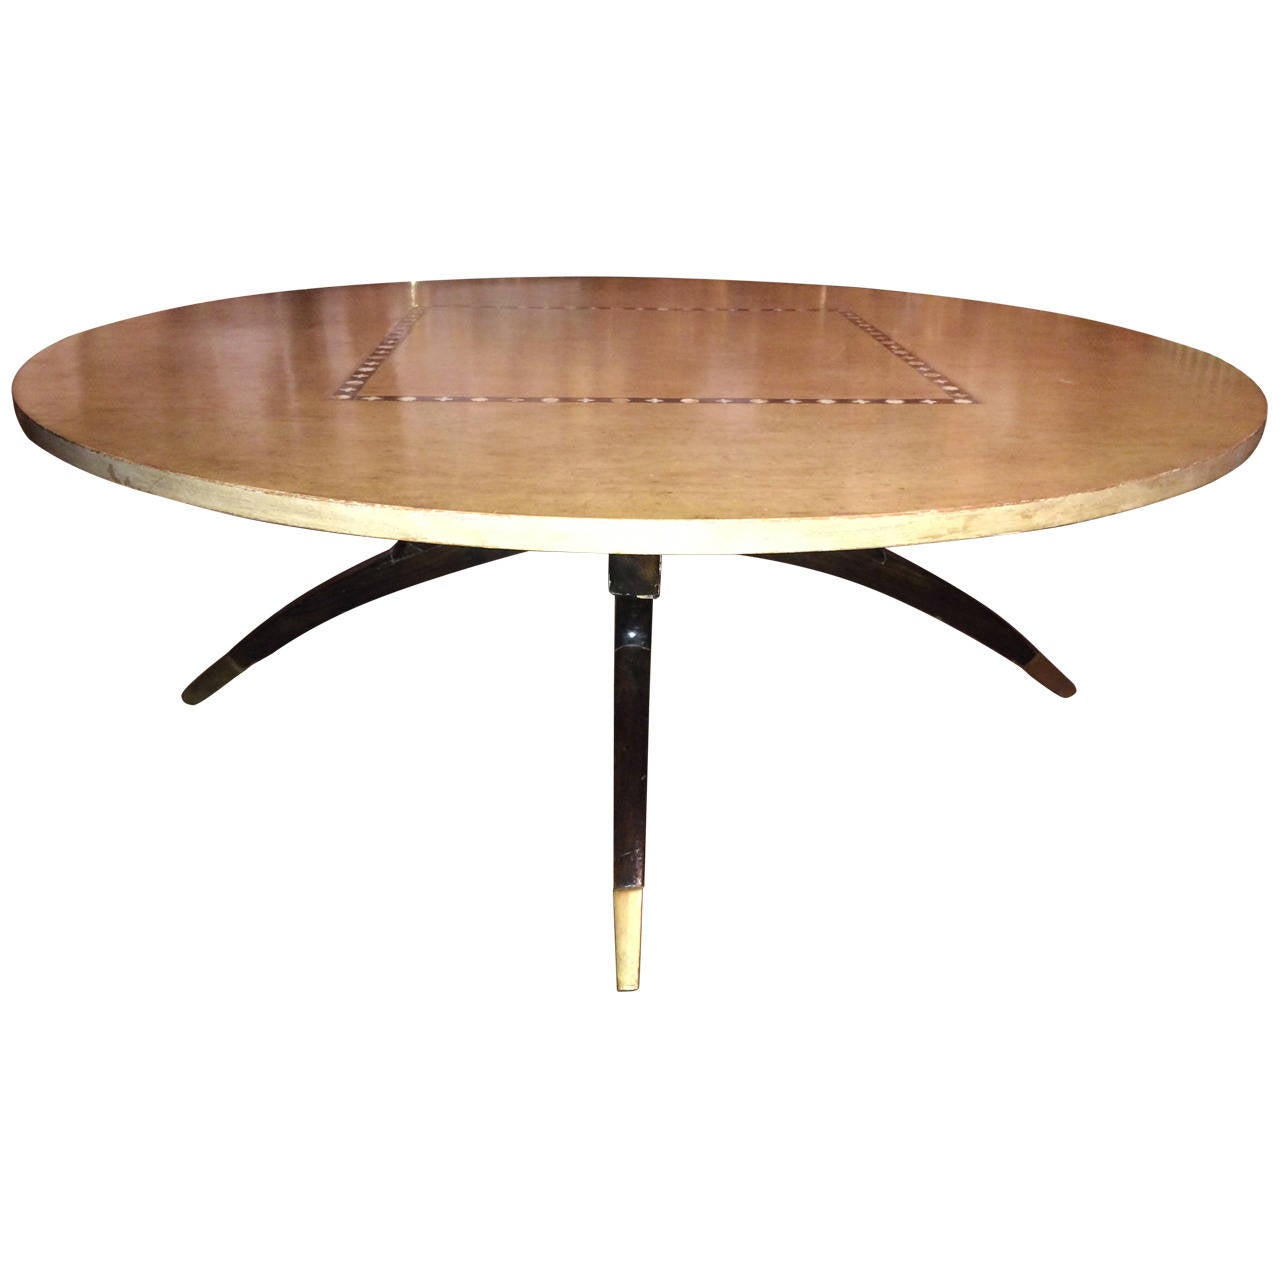 Moroccan Style Round Coffee Table With Inlay At 1stdibs